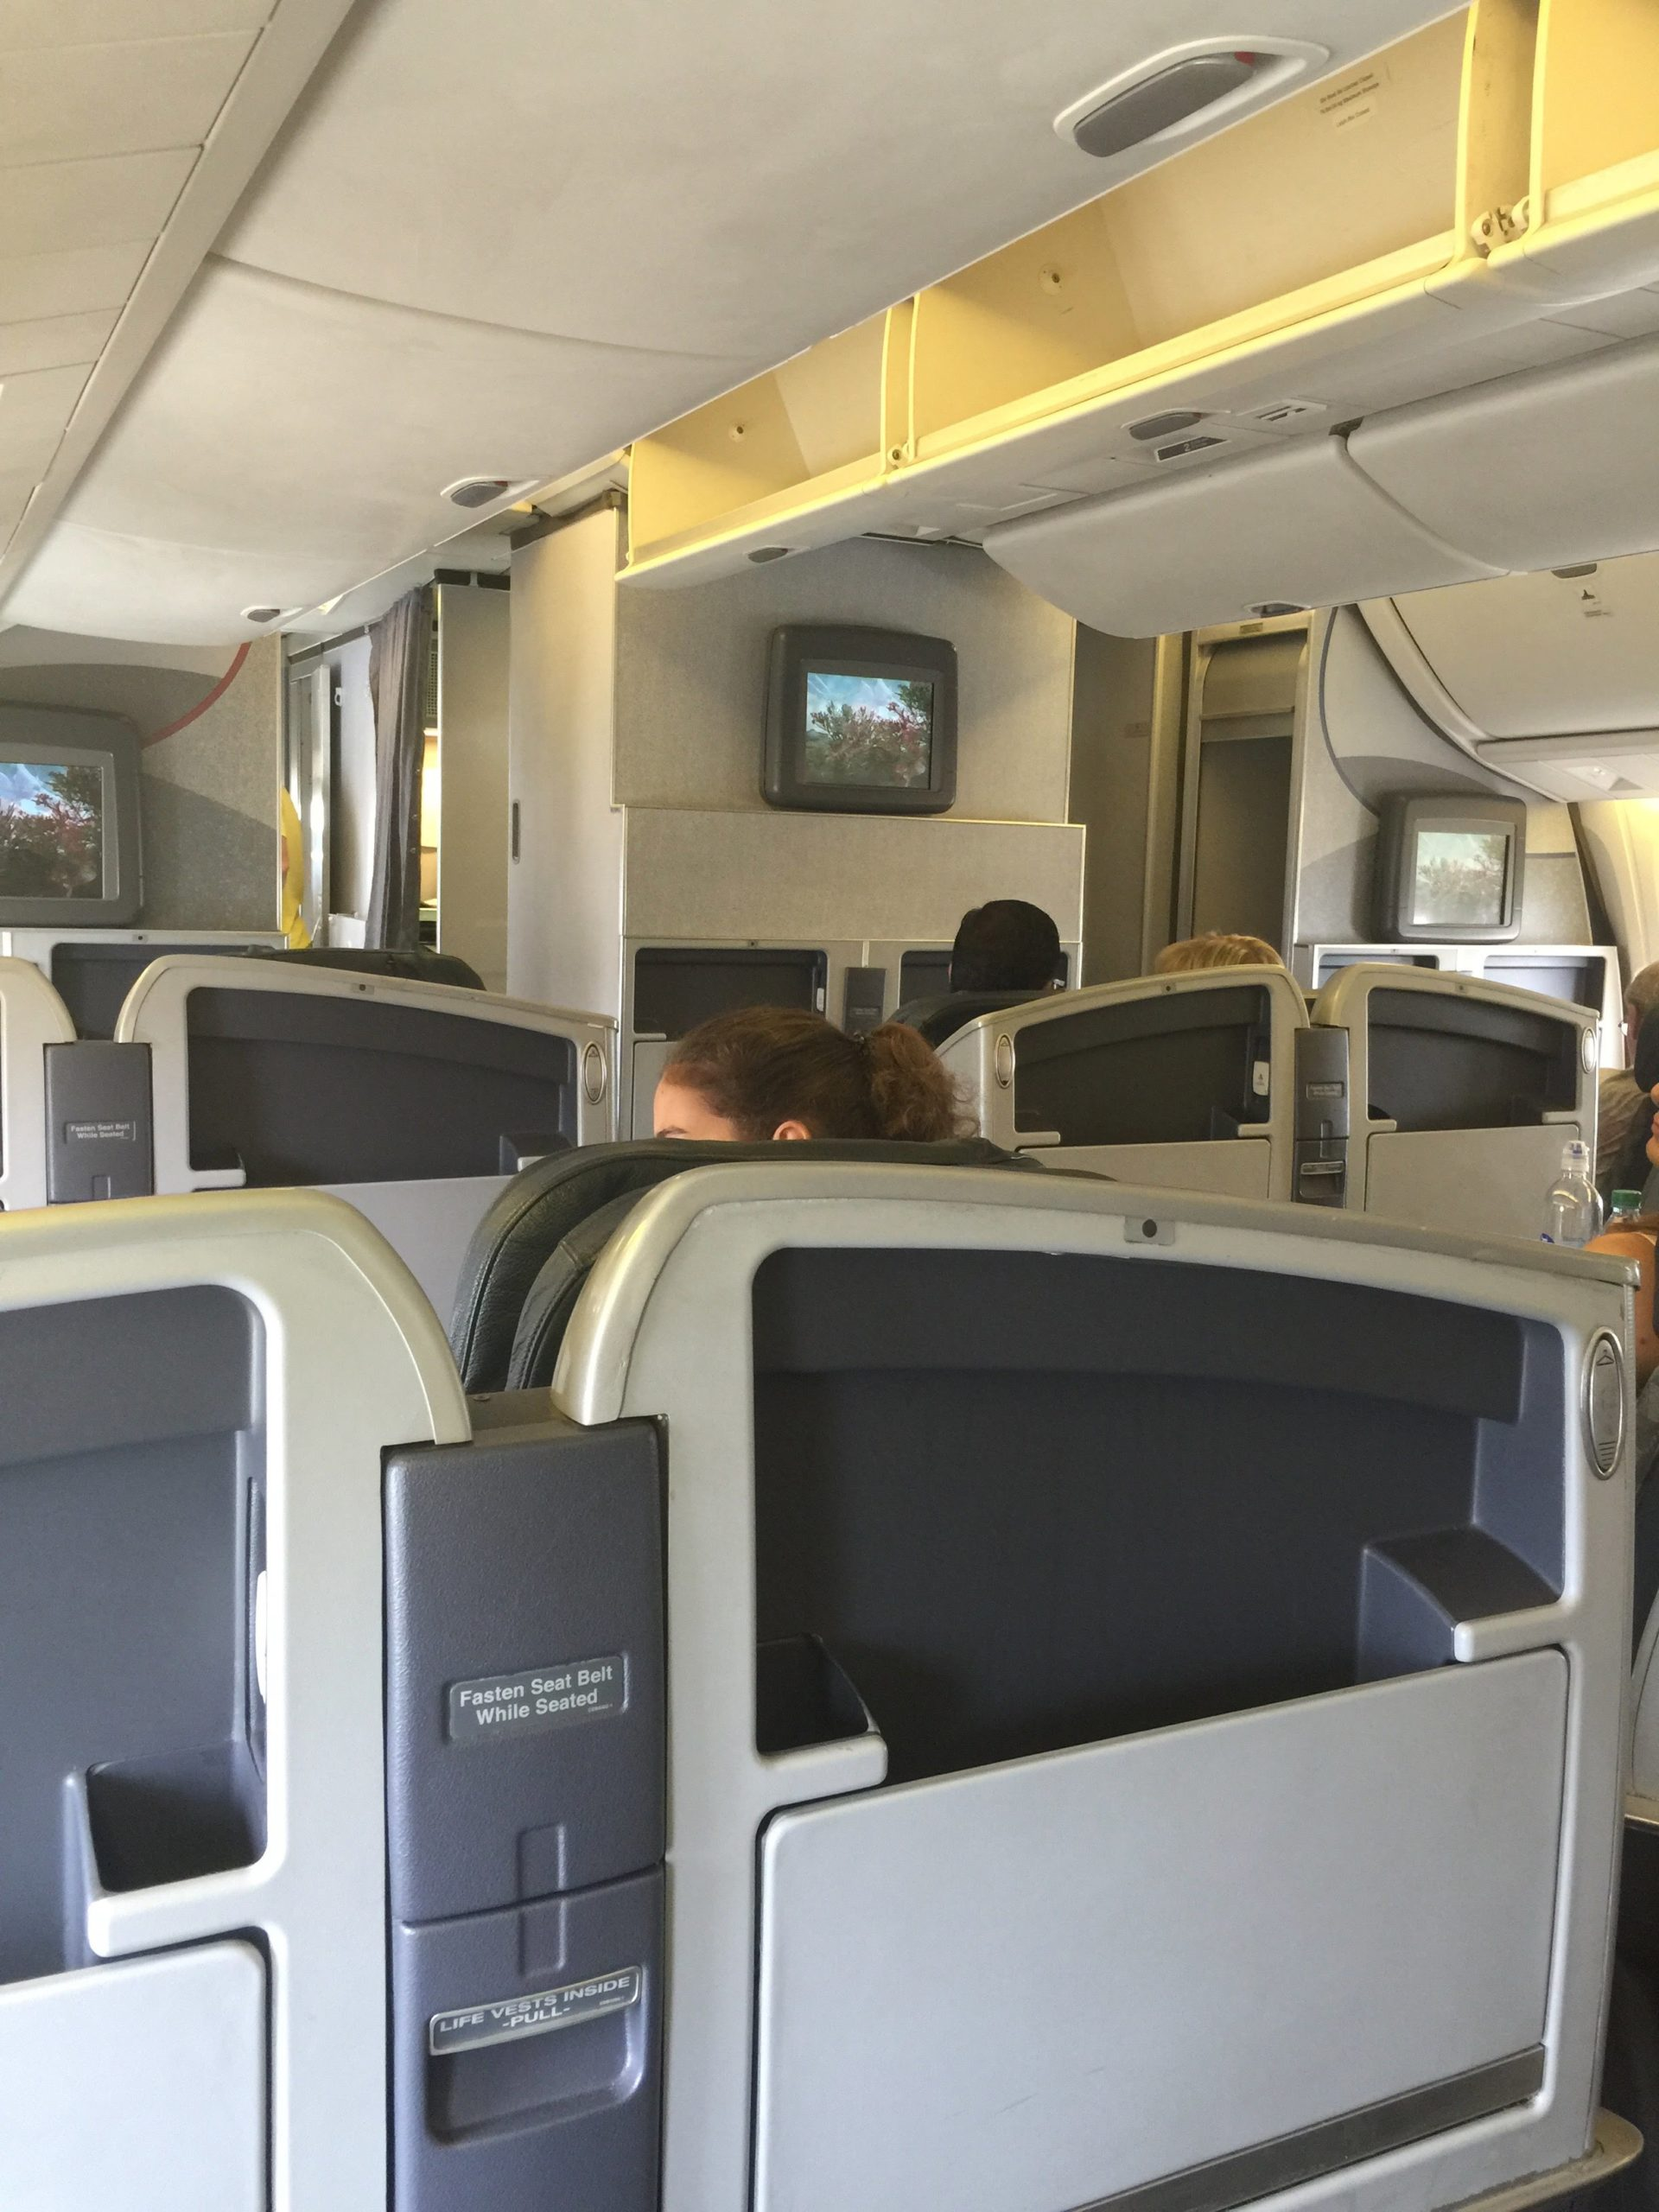 Old 767 Business Class Cabin